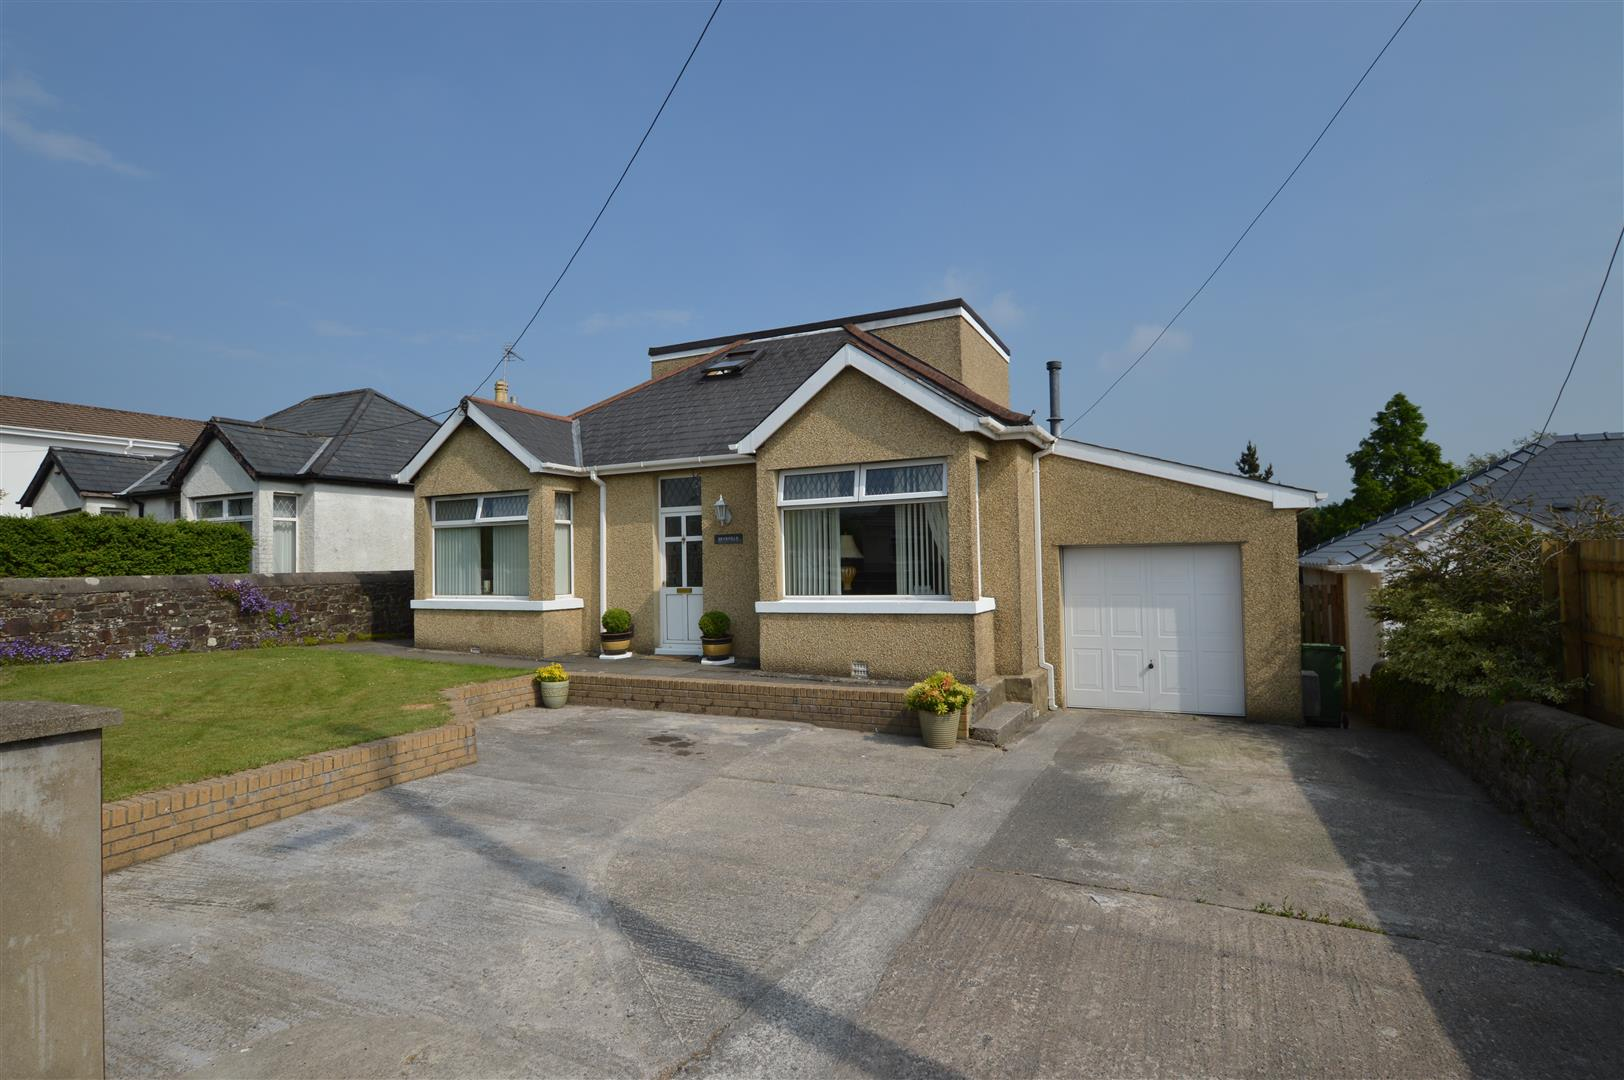 Brynna Road, Pencoed, Bridgend